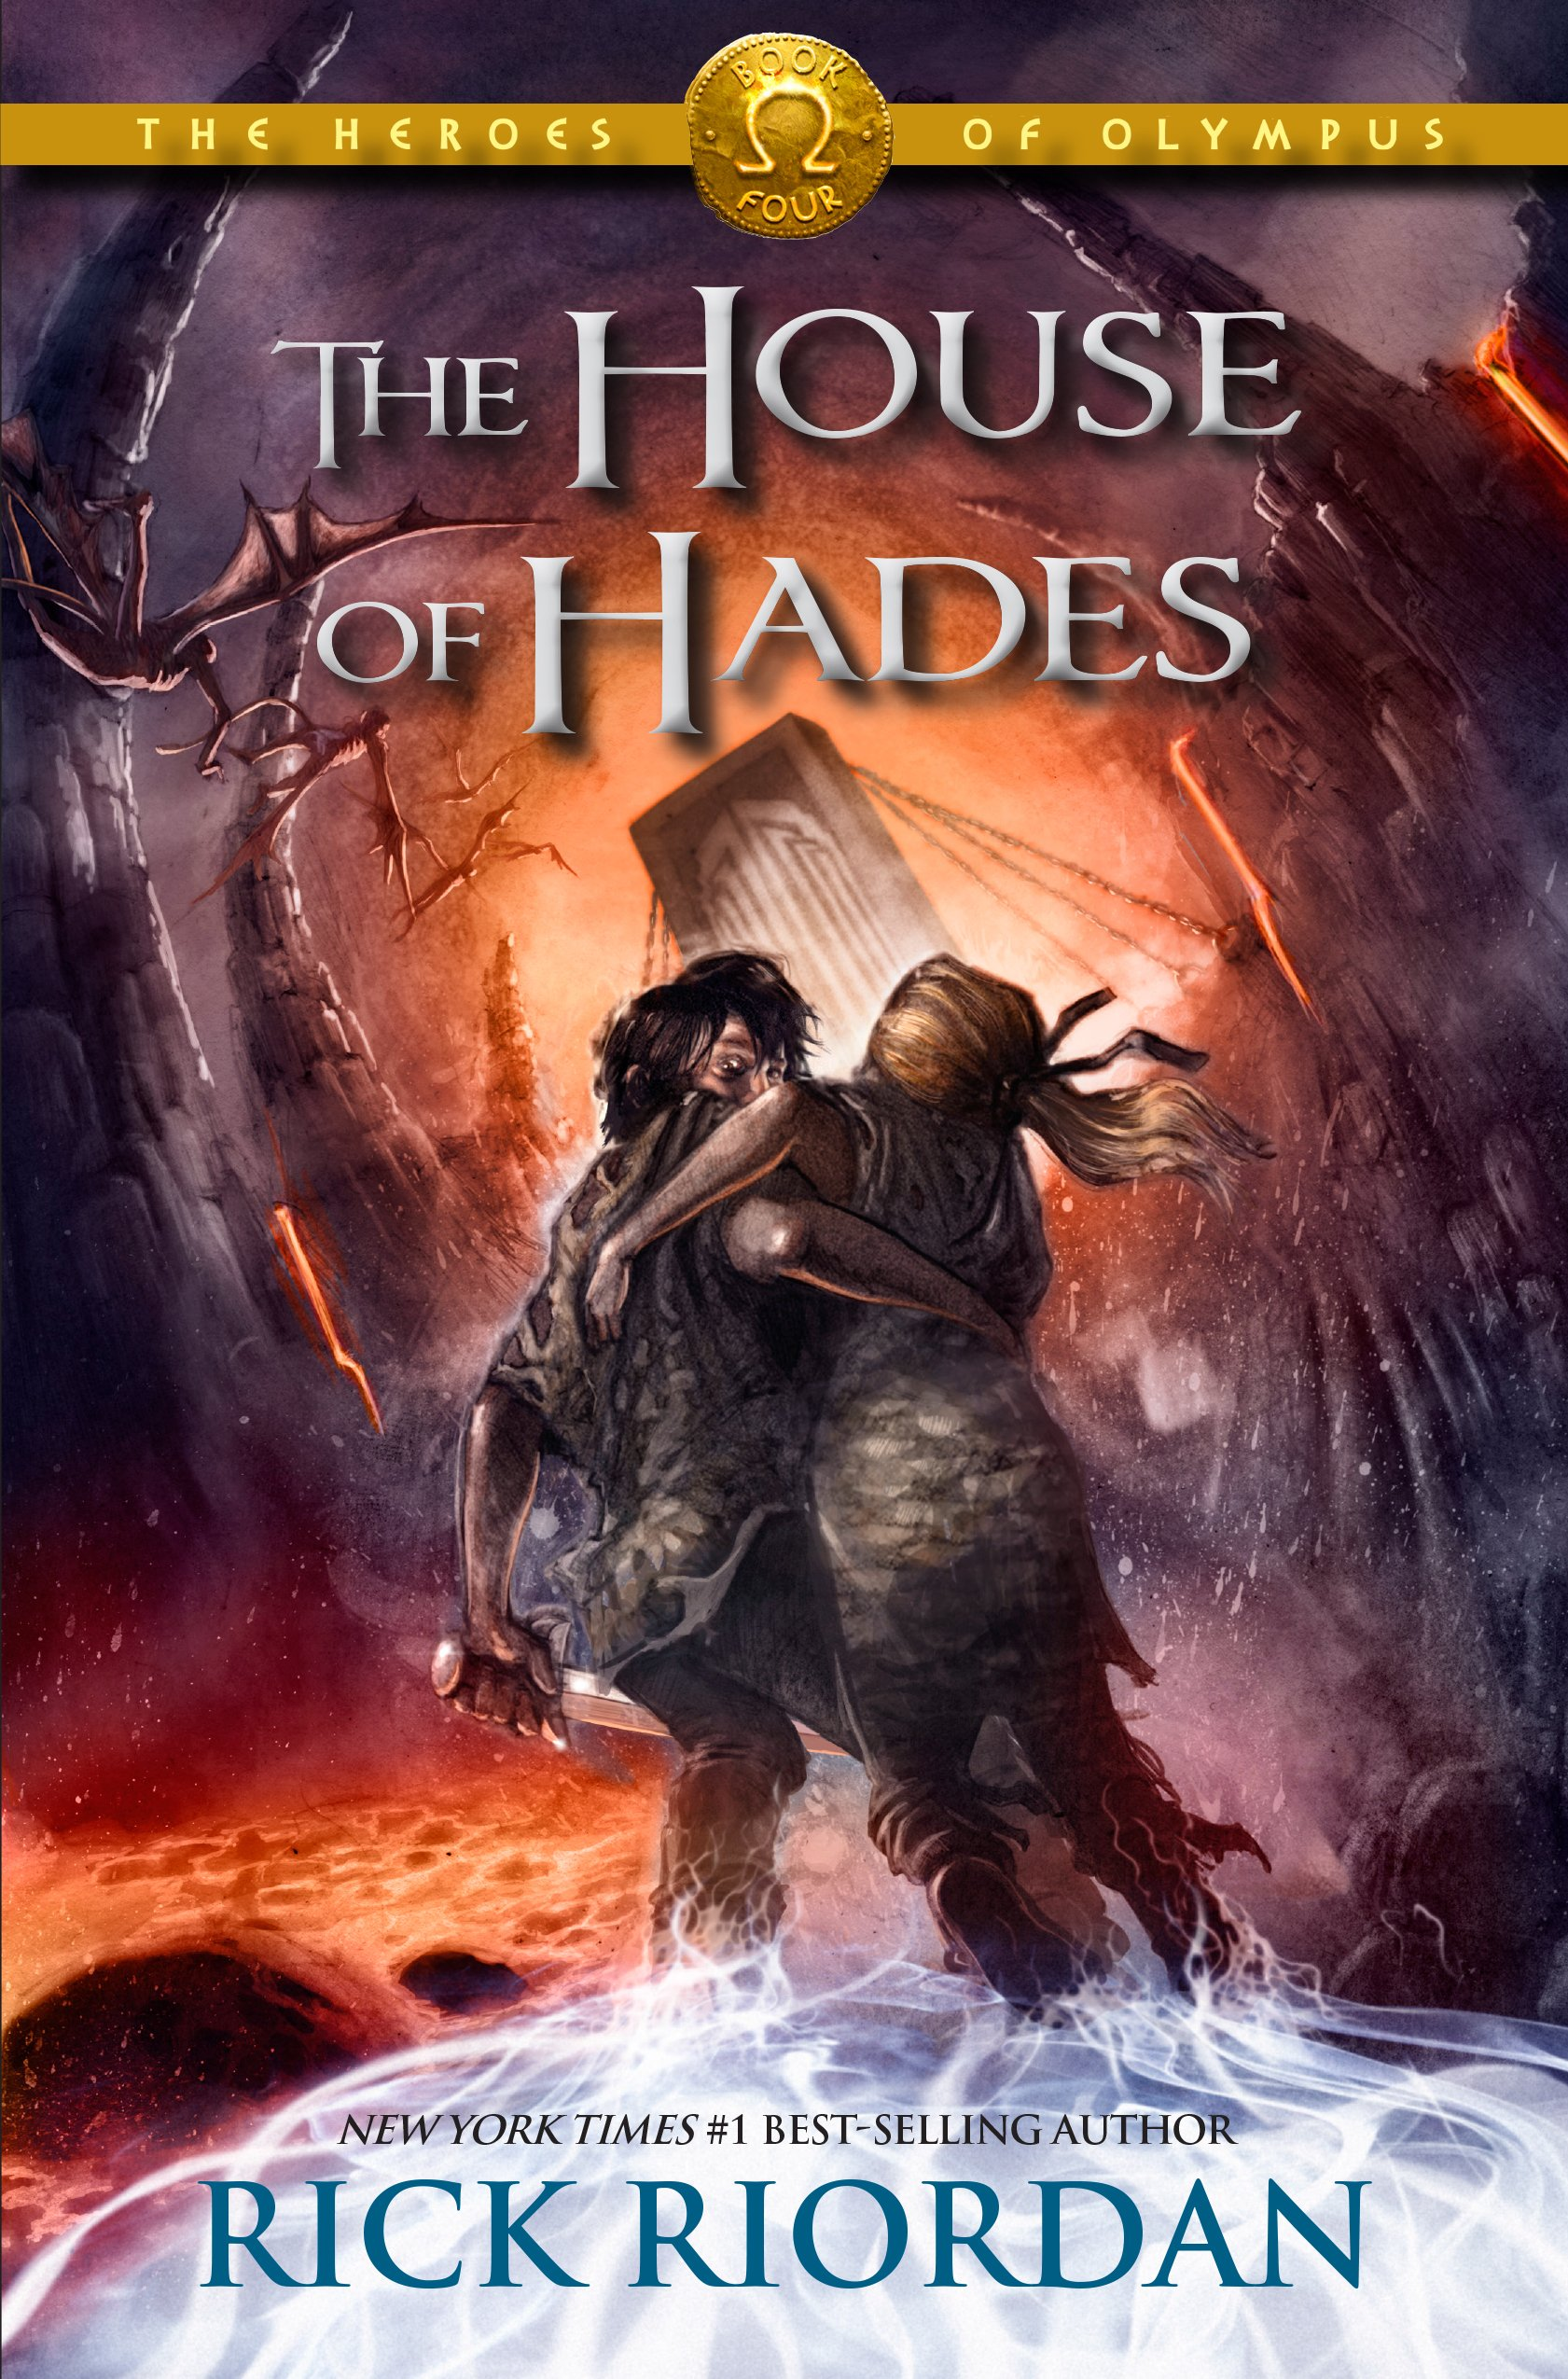 HEROES OF OLYMPUS ALL BOOKS PDF DOWNLOAD